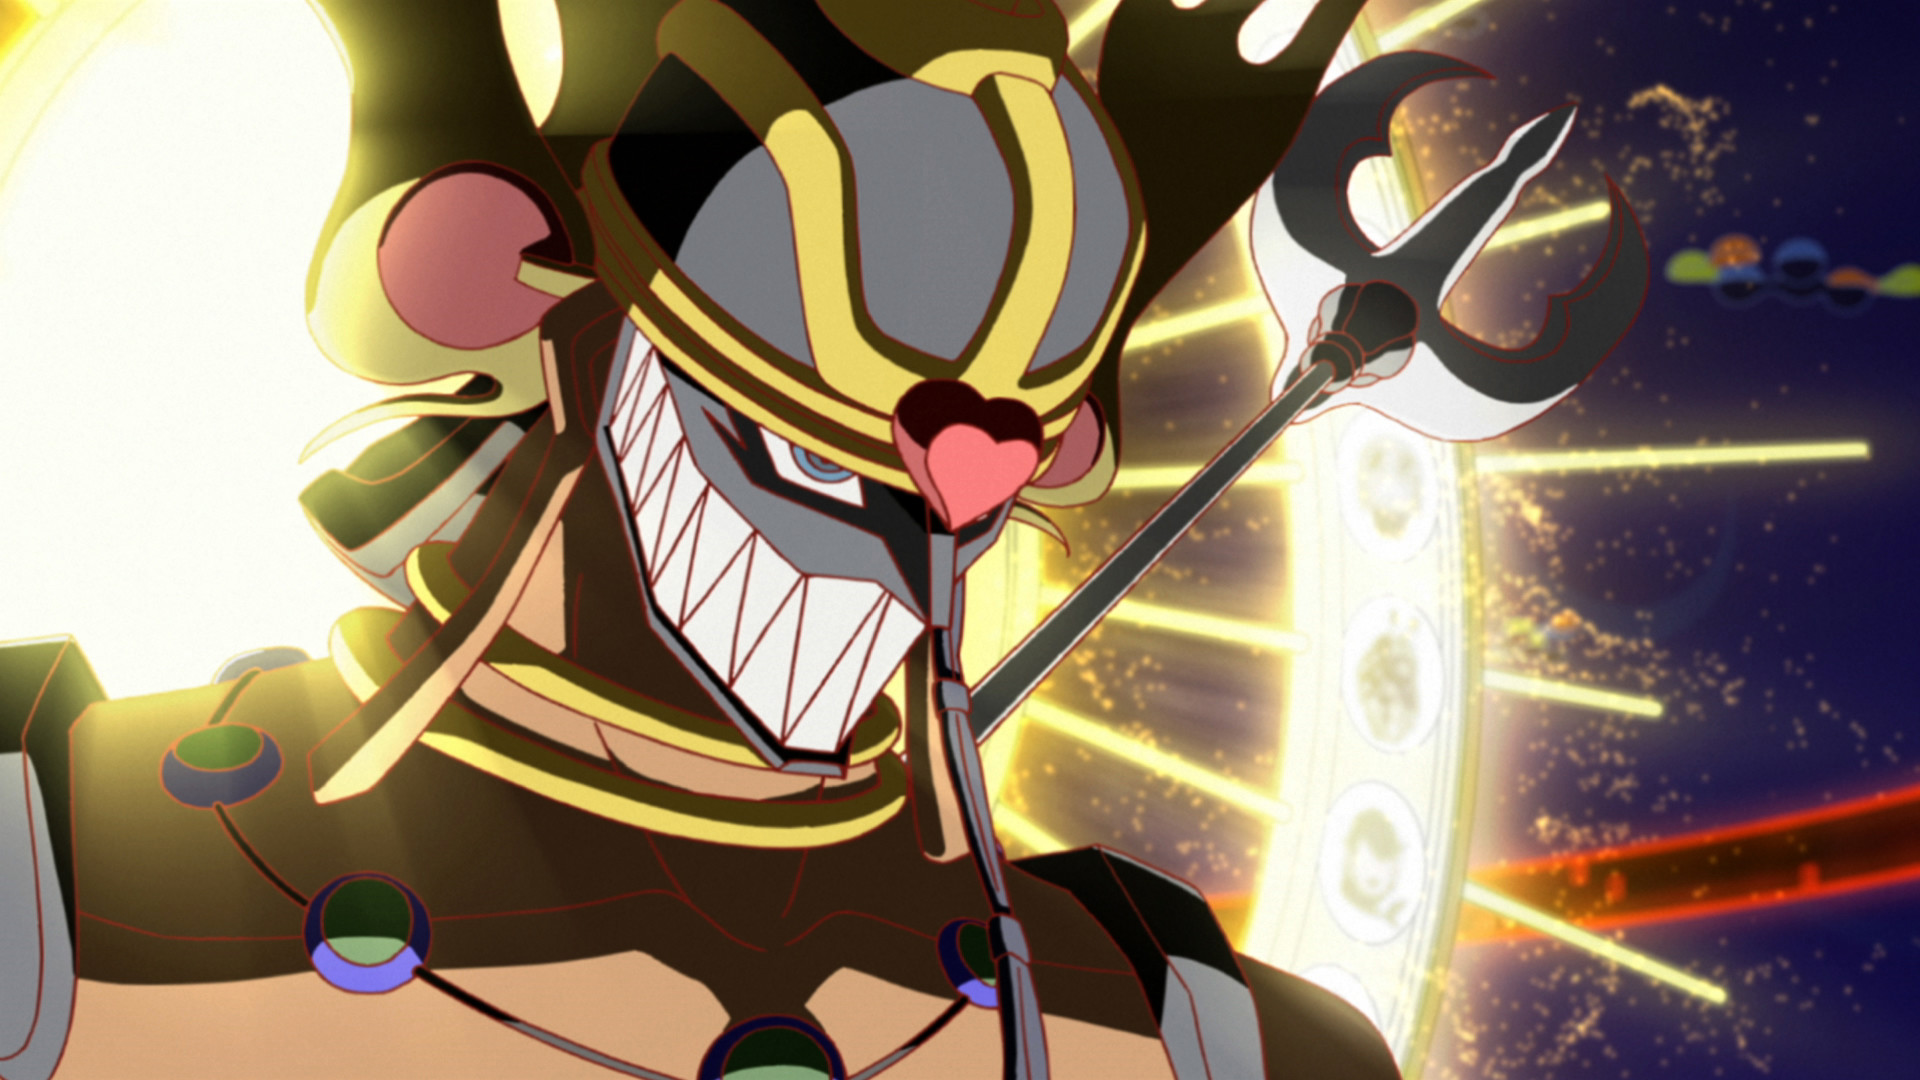 1920x1080 Anime Villains images Love Machine - Summer Wars HD wallpaper and  background photos